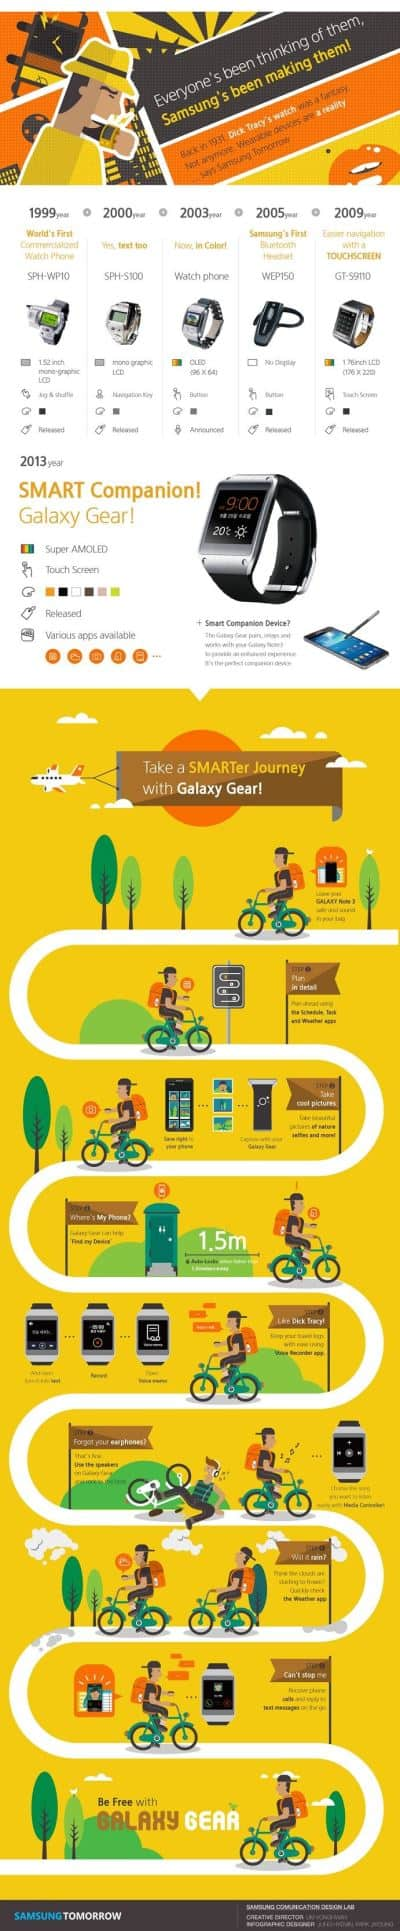 samsung-galaxy-gear-infographic